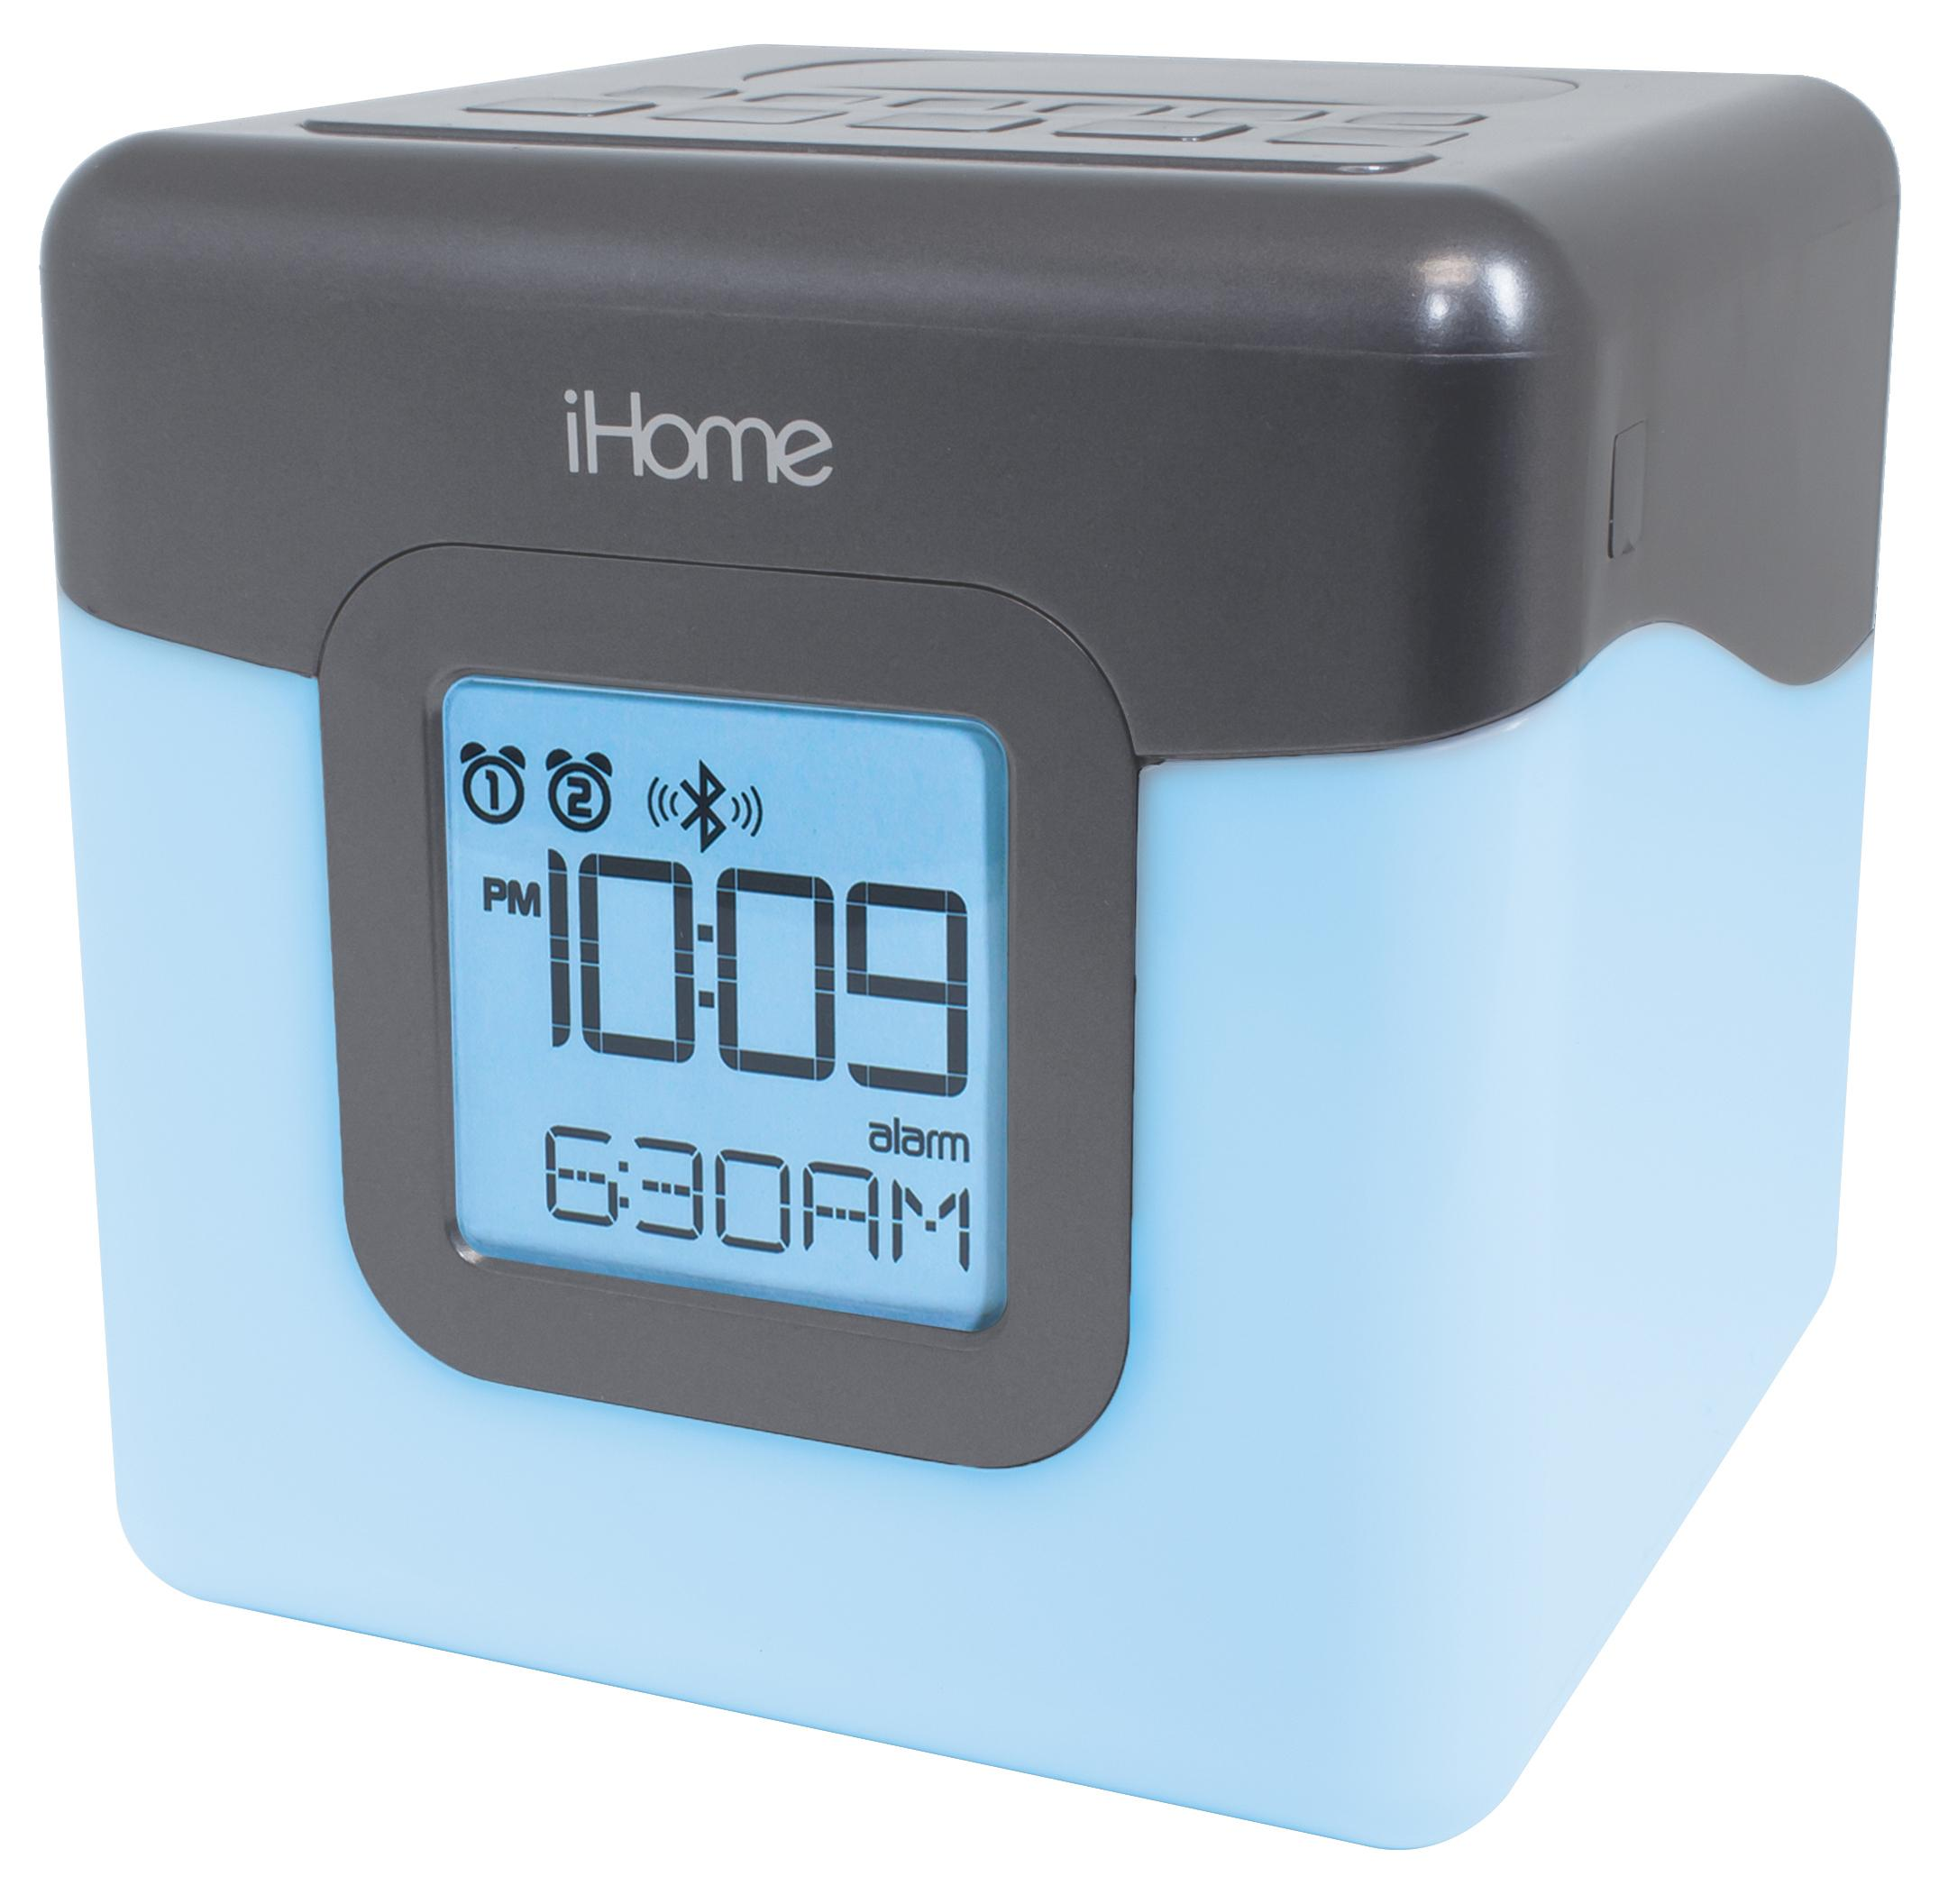 ihome ibt28gc bluetooth color changing dual alarm clock fm radio with usb charging. Black Bedroom Furniture Sets. Home Design Ideas